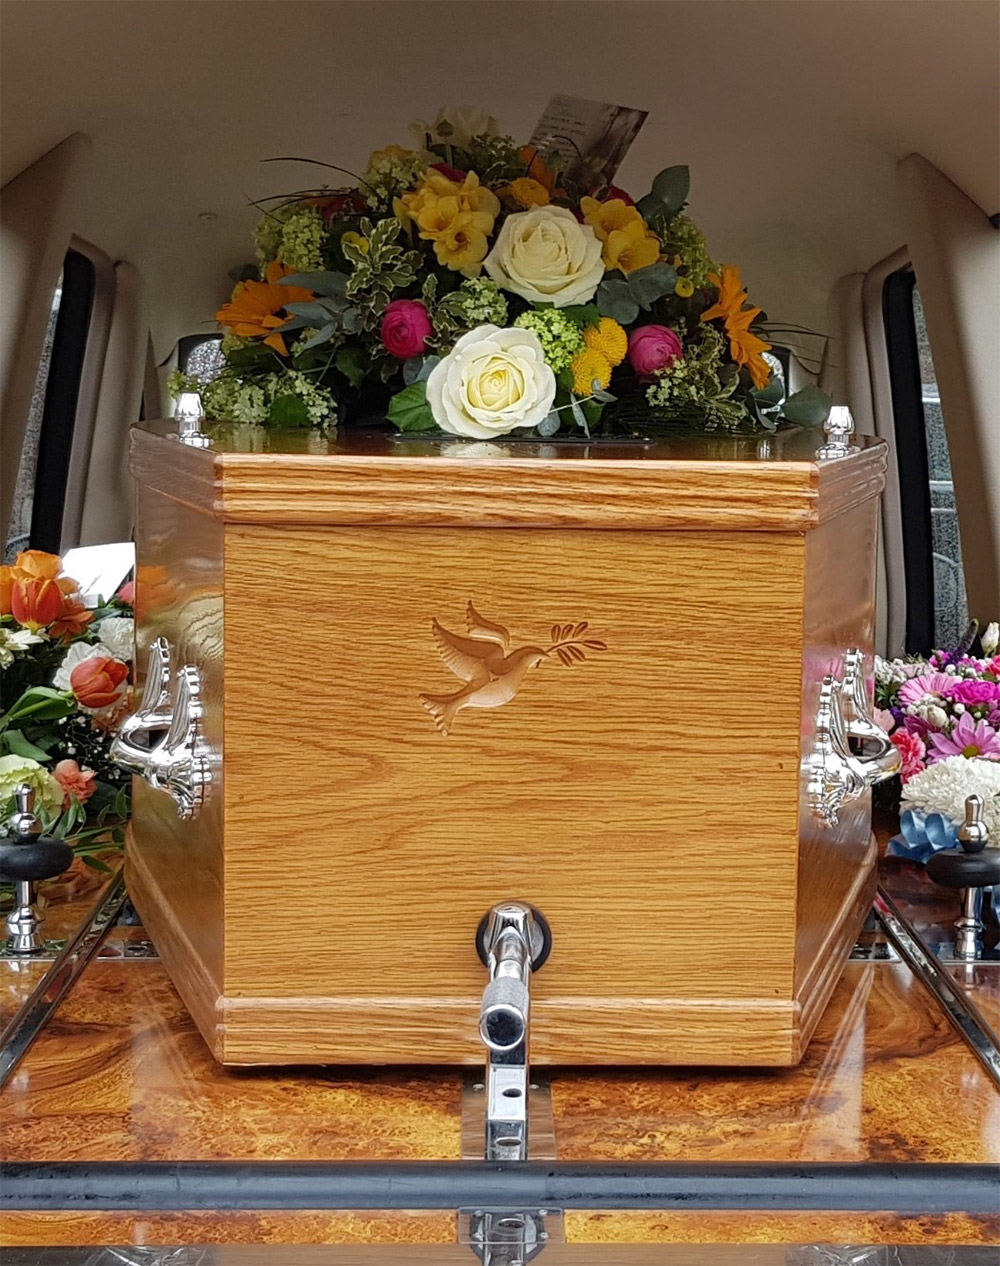 Our signature coffin